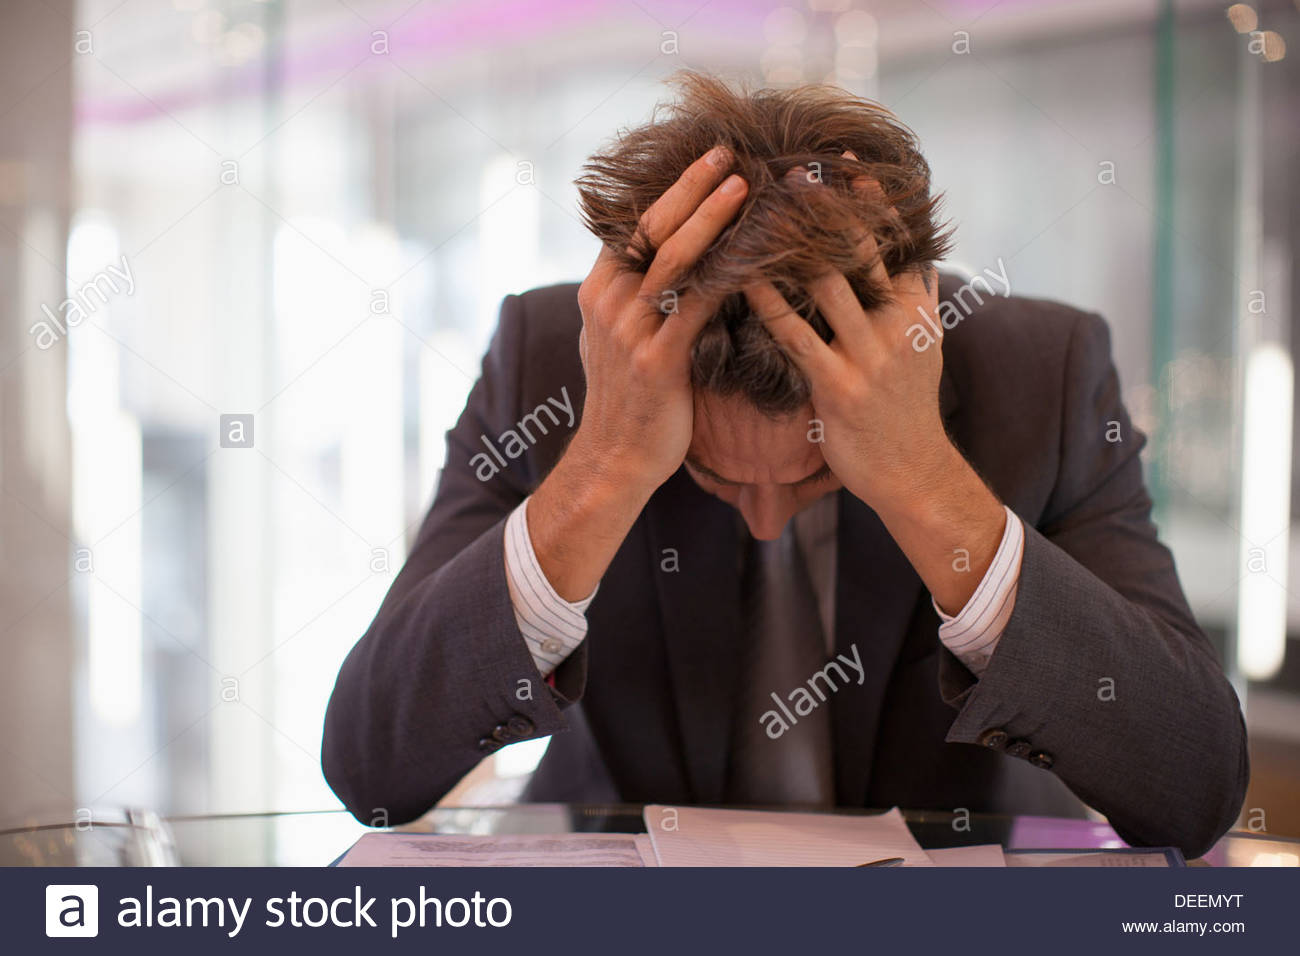 Frustrated businessman sitting at desk with  head in hands - Stock Image